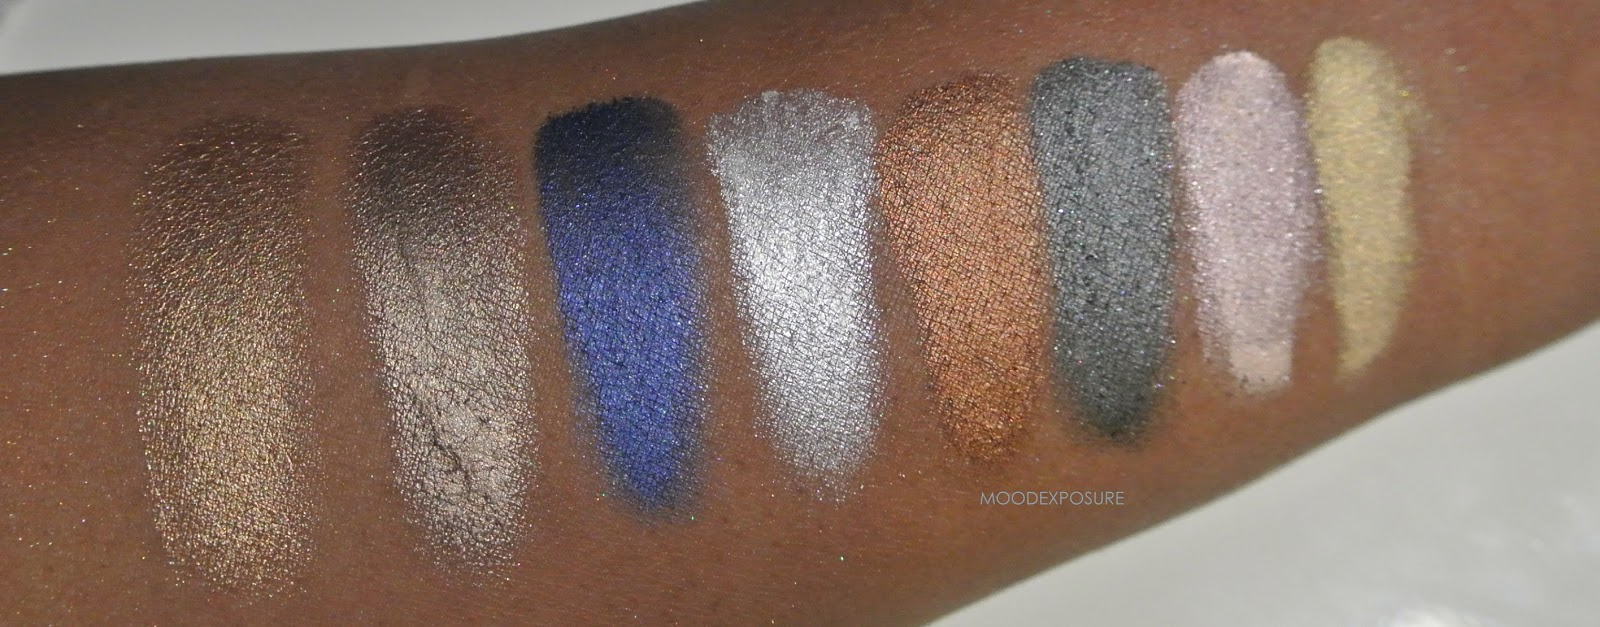 MØØD EXPØSURE: e.l.f. Smudge Pot Swatches and Review